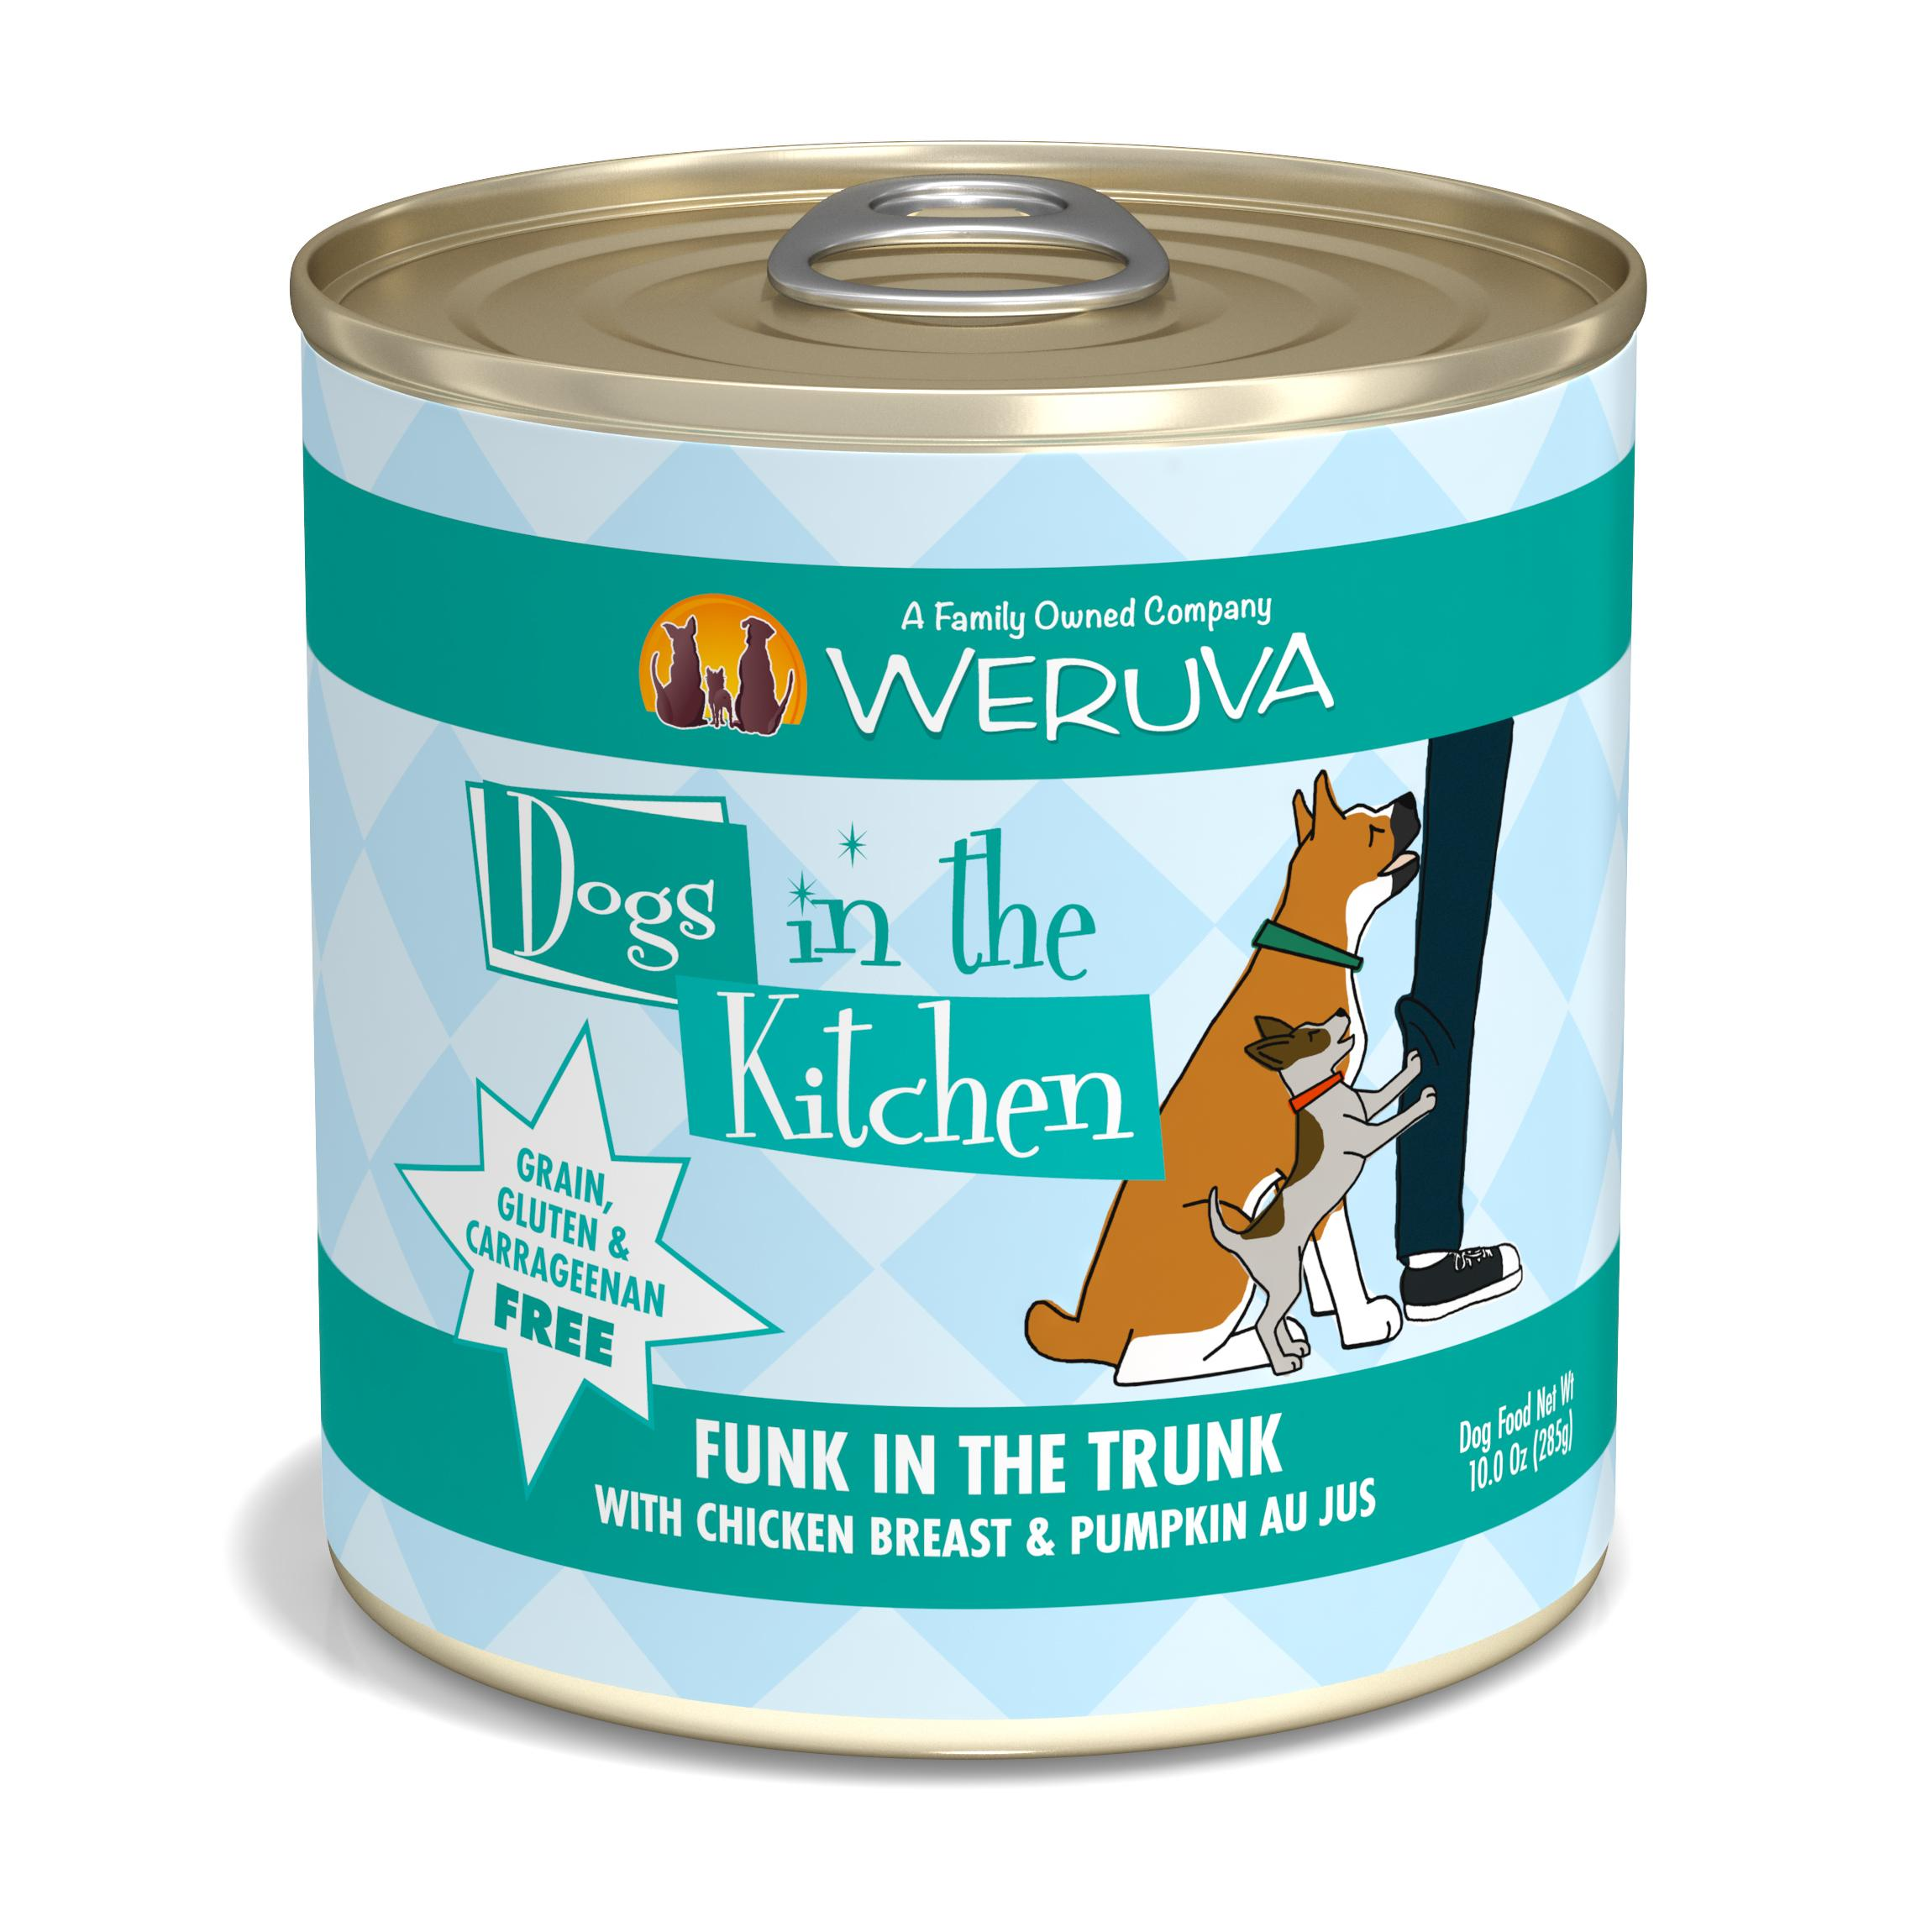 Weruva Dogs in the Kitchen Funk in the Trunk with Chicken Breast & Pumpkin Au Jus Grain-Free Wet Dog Food, 10-oz can